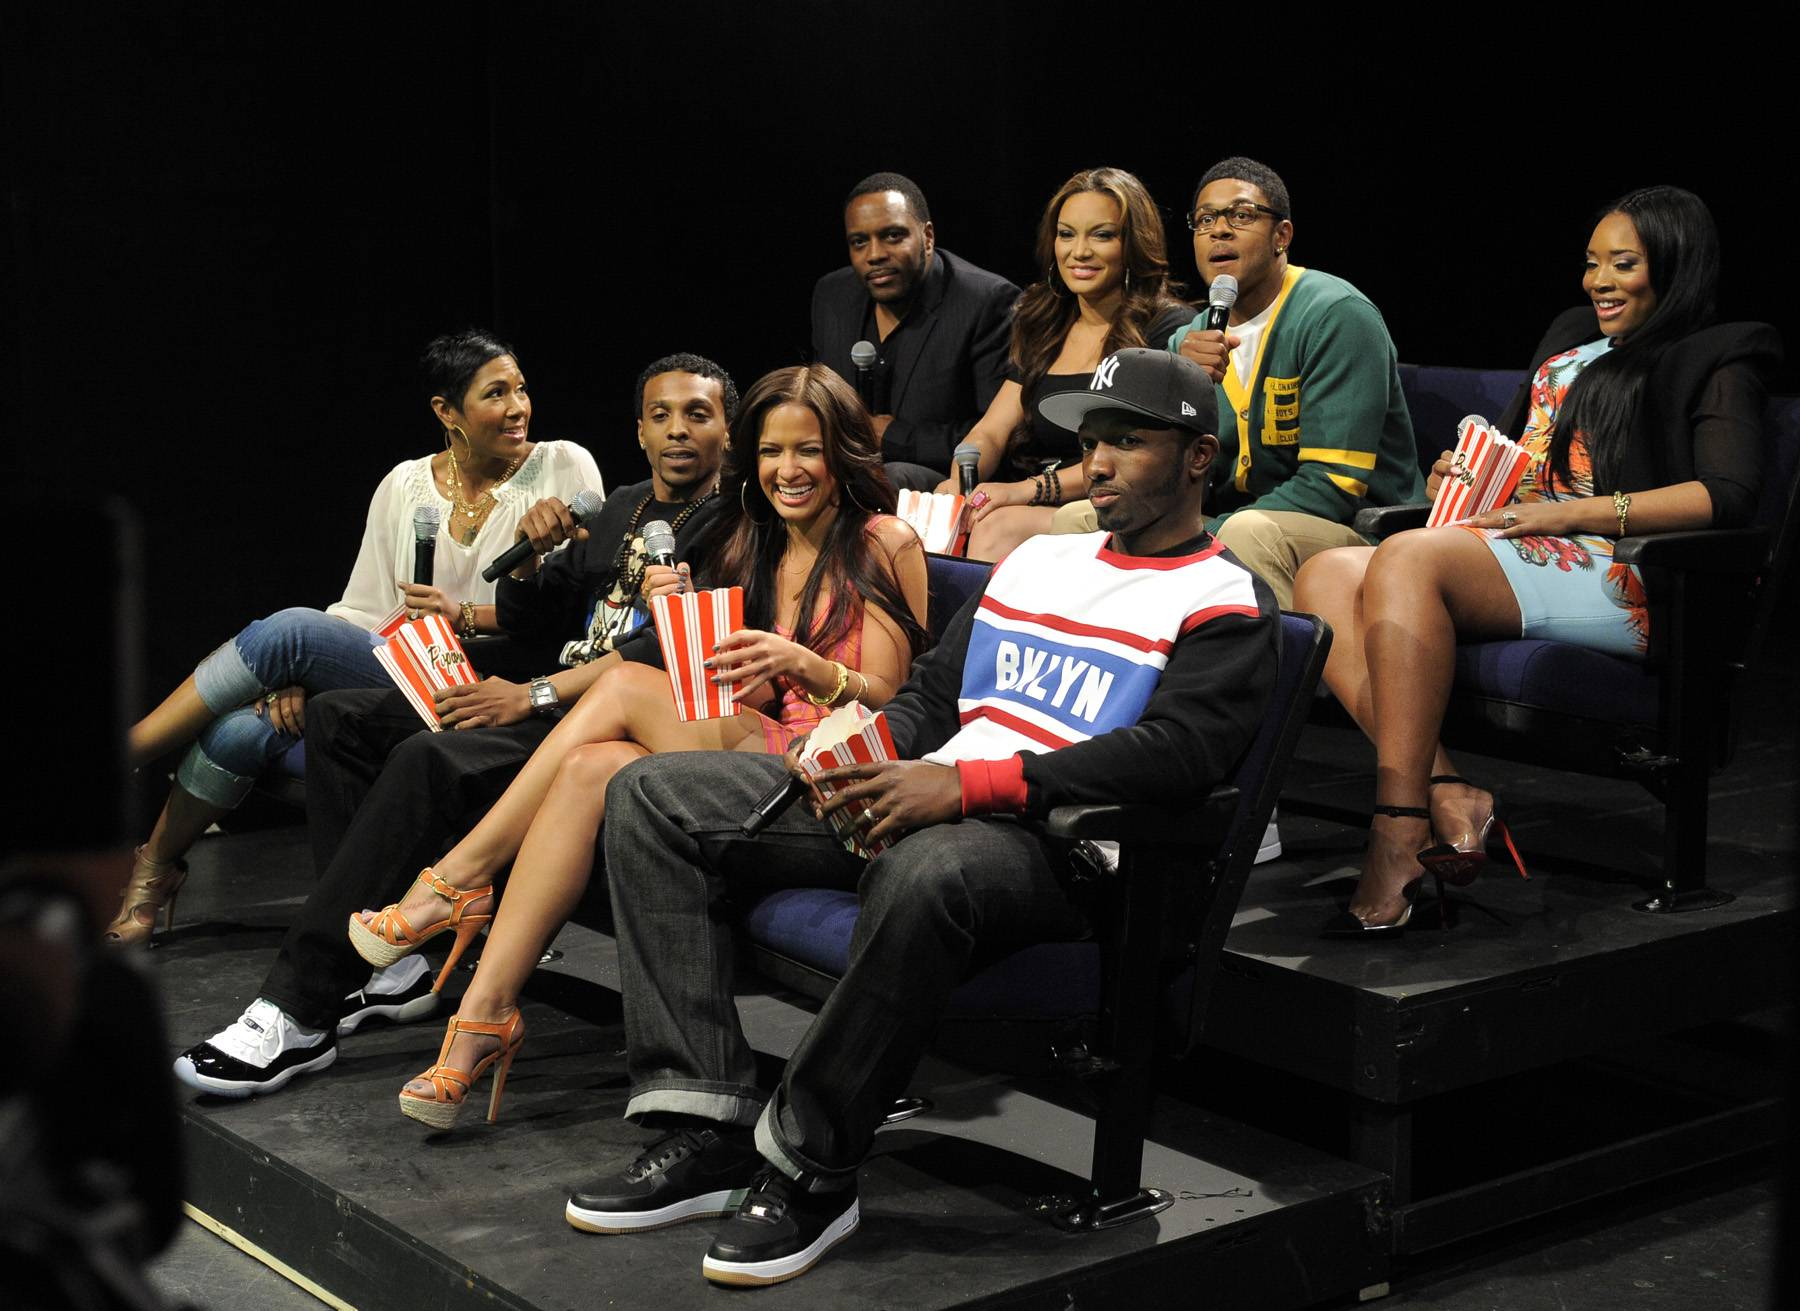 """Theater Chillin' - Rocsi Diaz and Pooch Hall with the cast of""""Life, Love, Soul"""" at 106 & Park, April 12, 2012. (Photo: John Ricard / BET)"""